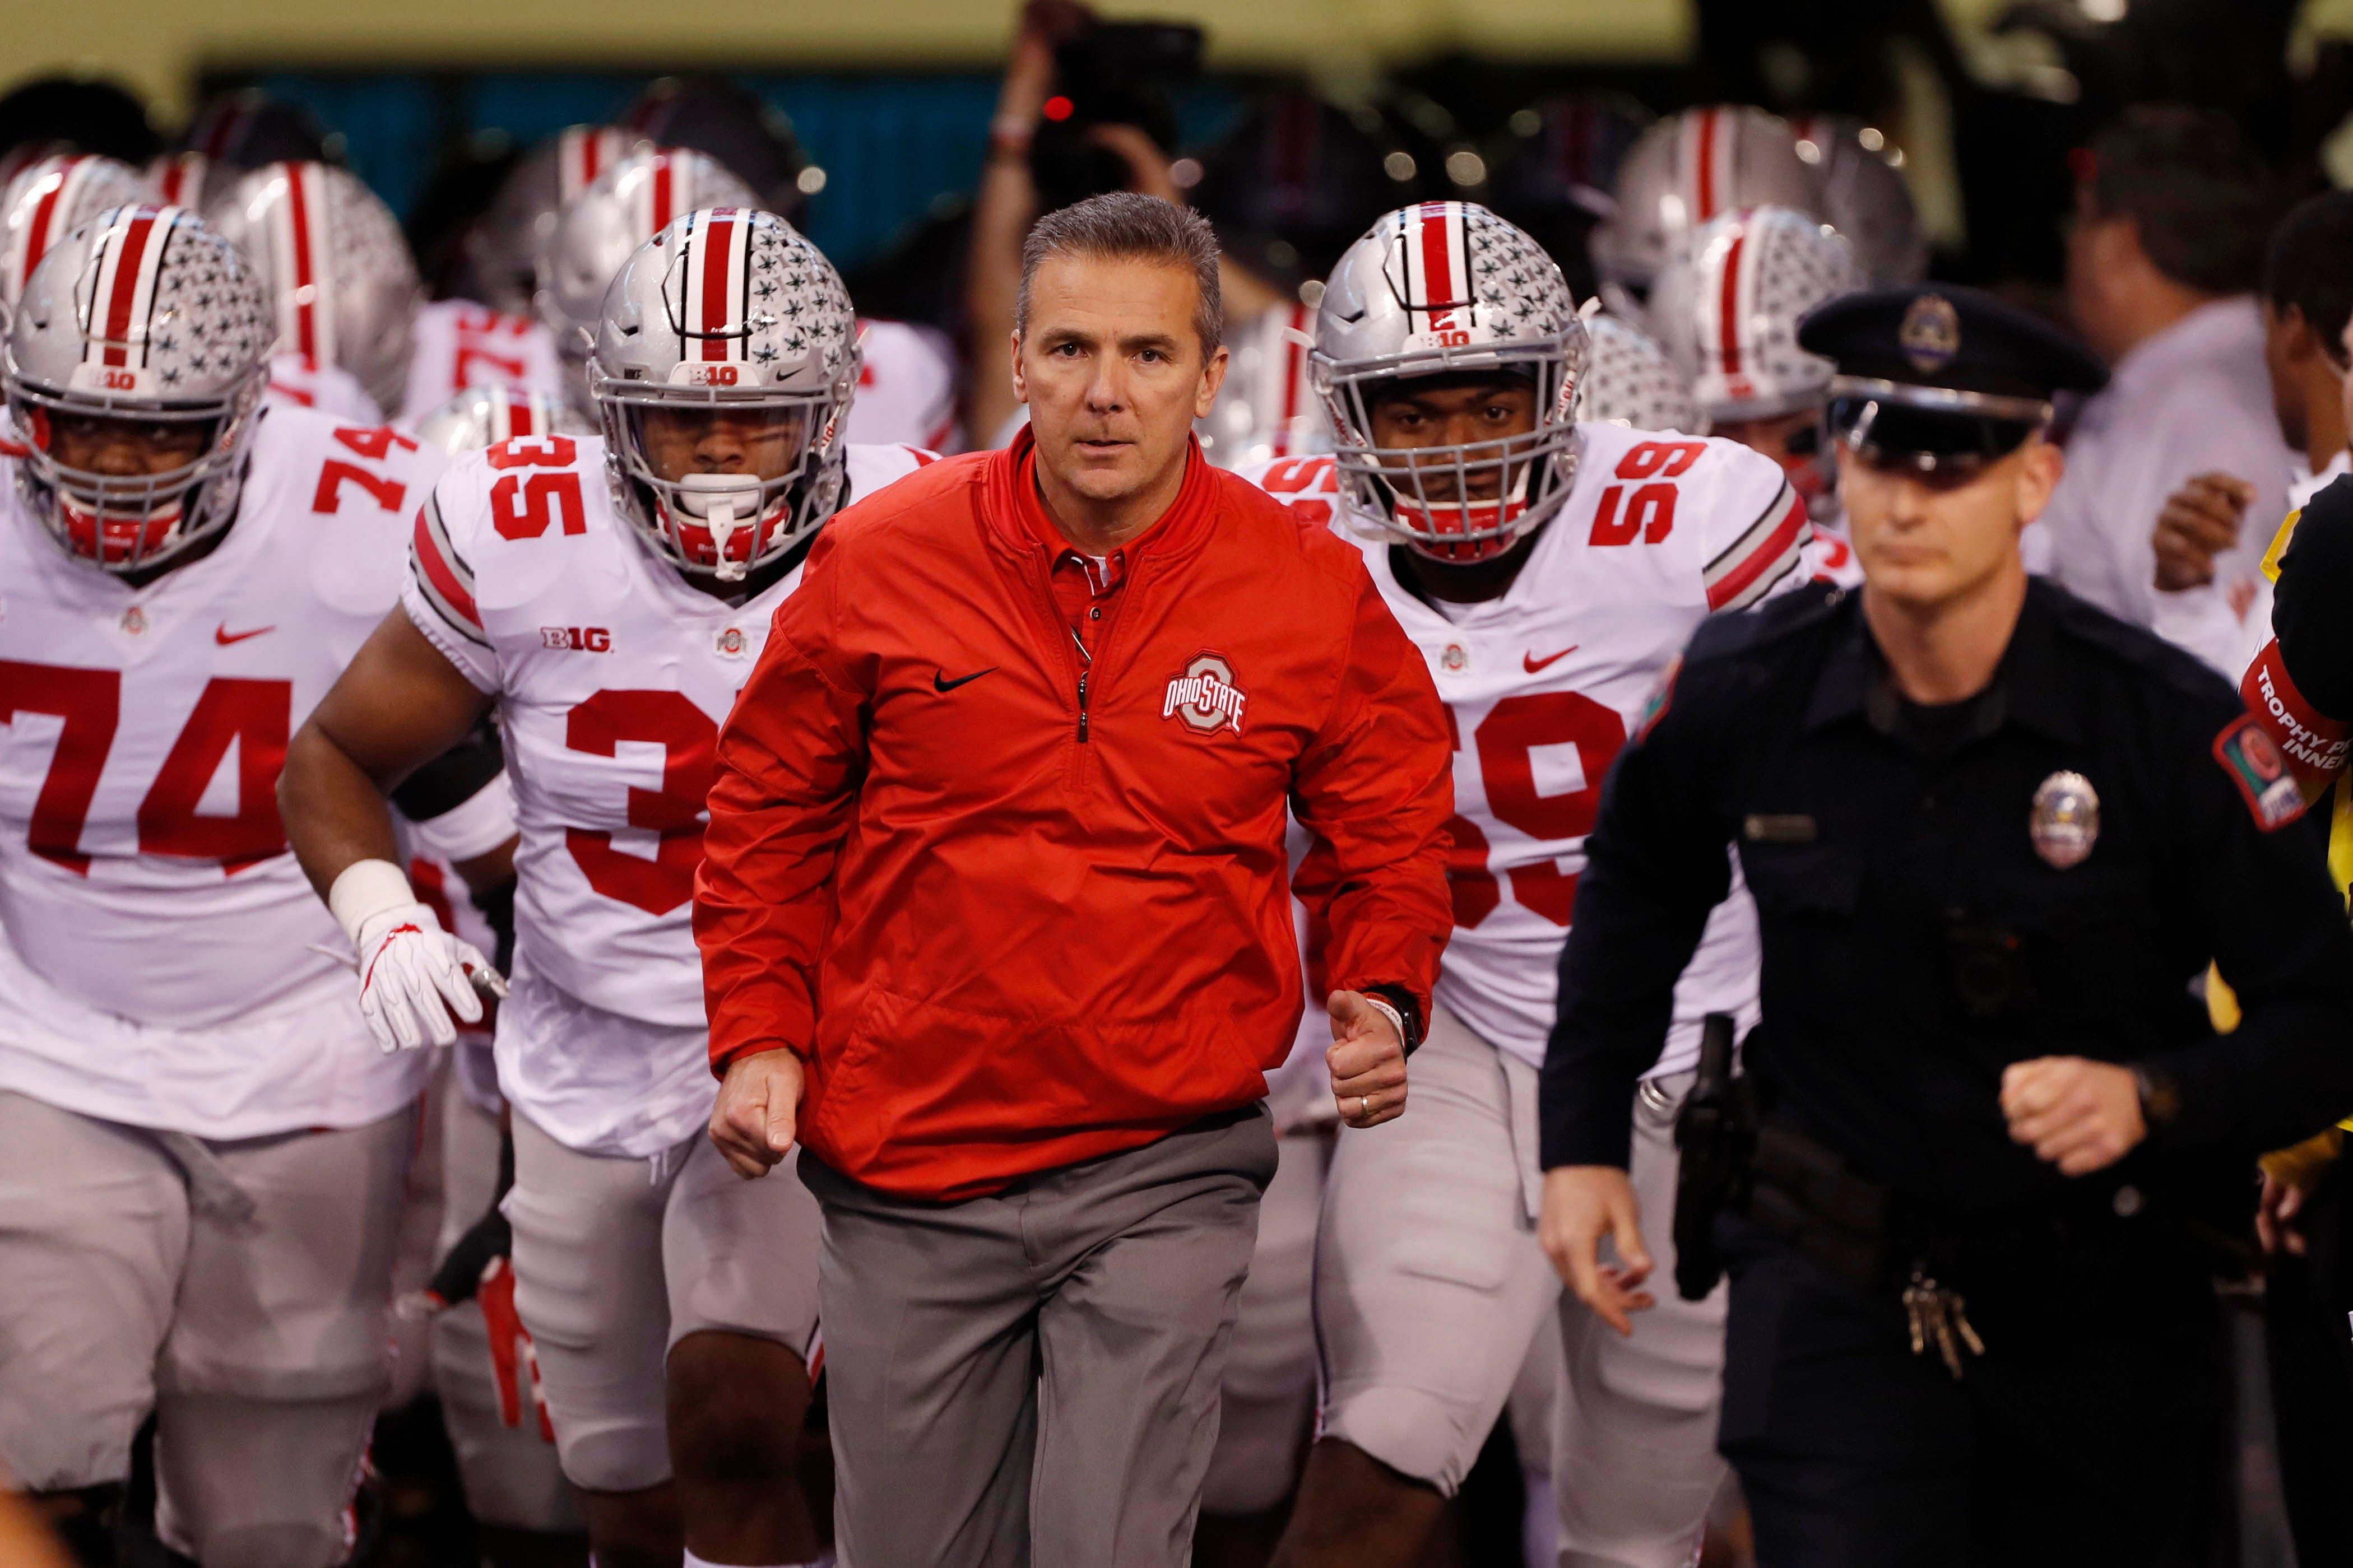 Ohio State suspends football coach Urban Meyer three games; athletic director suspended